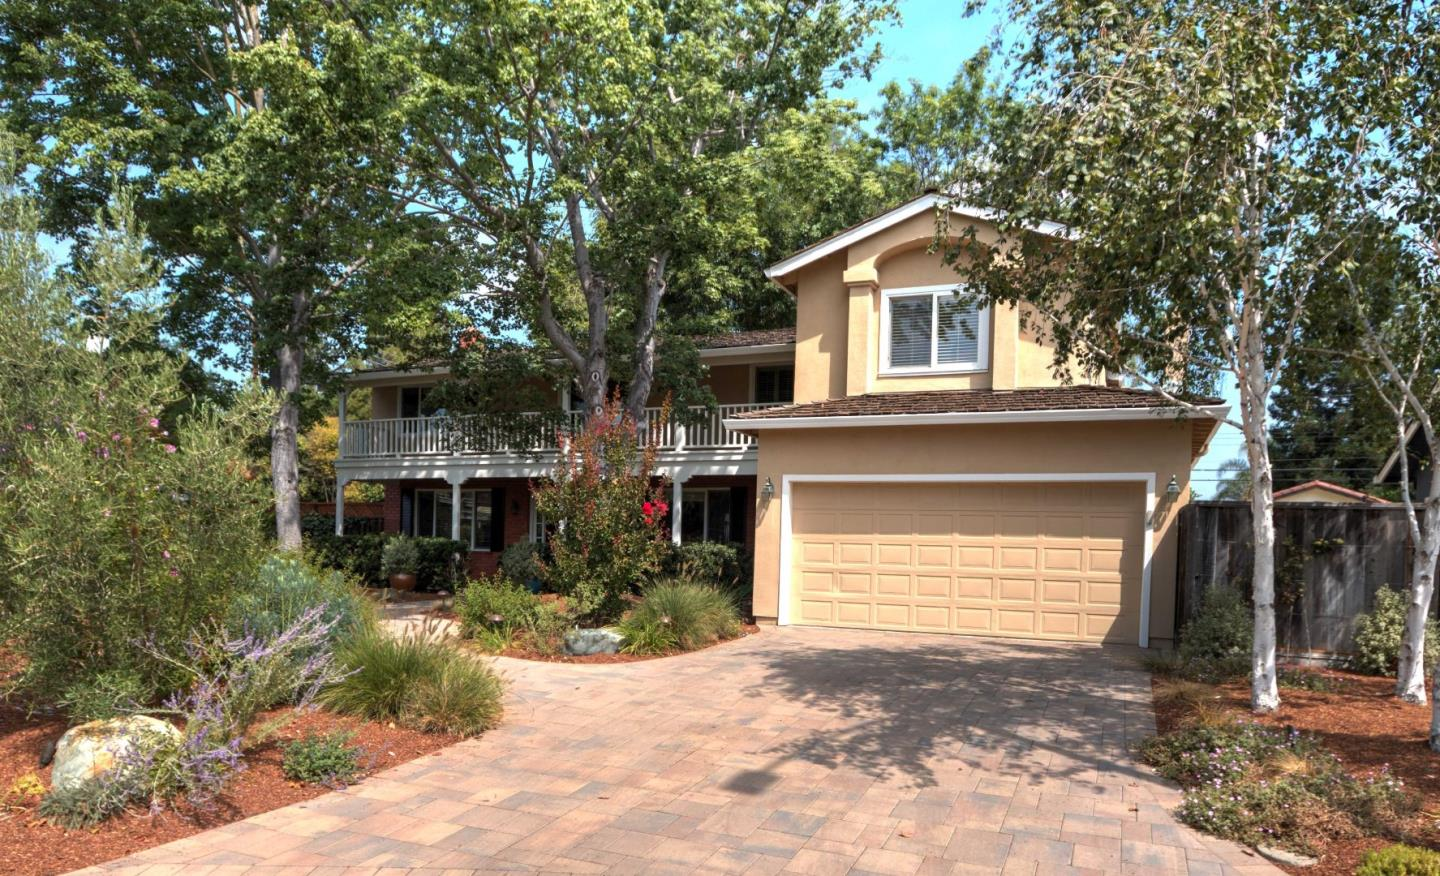 Single Family Home for Sale at 180 CHATHAM Way Mountain View, California 94040 United States